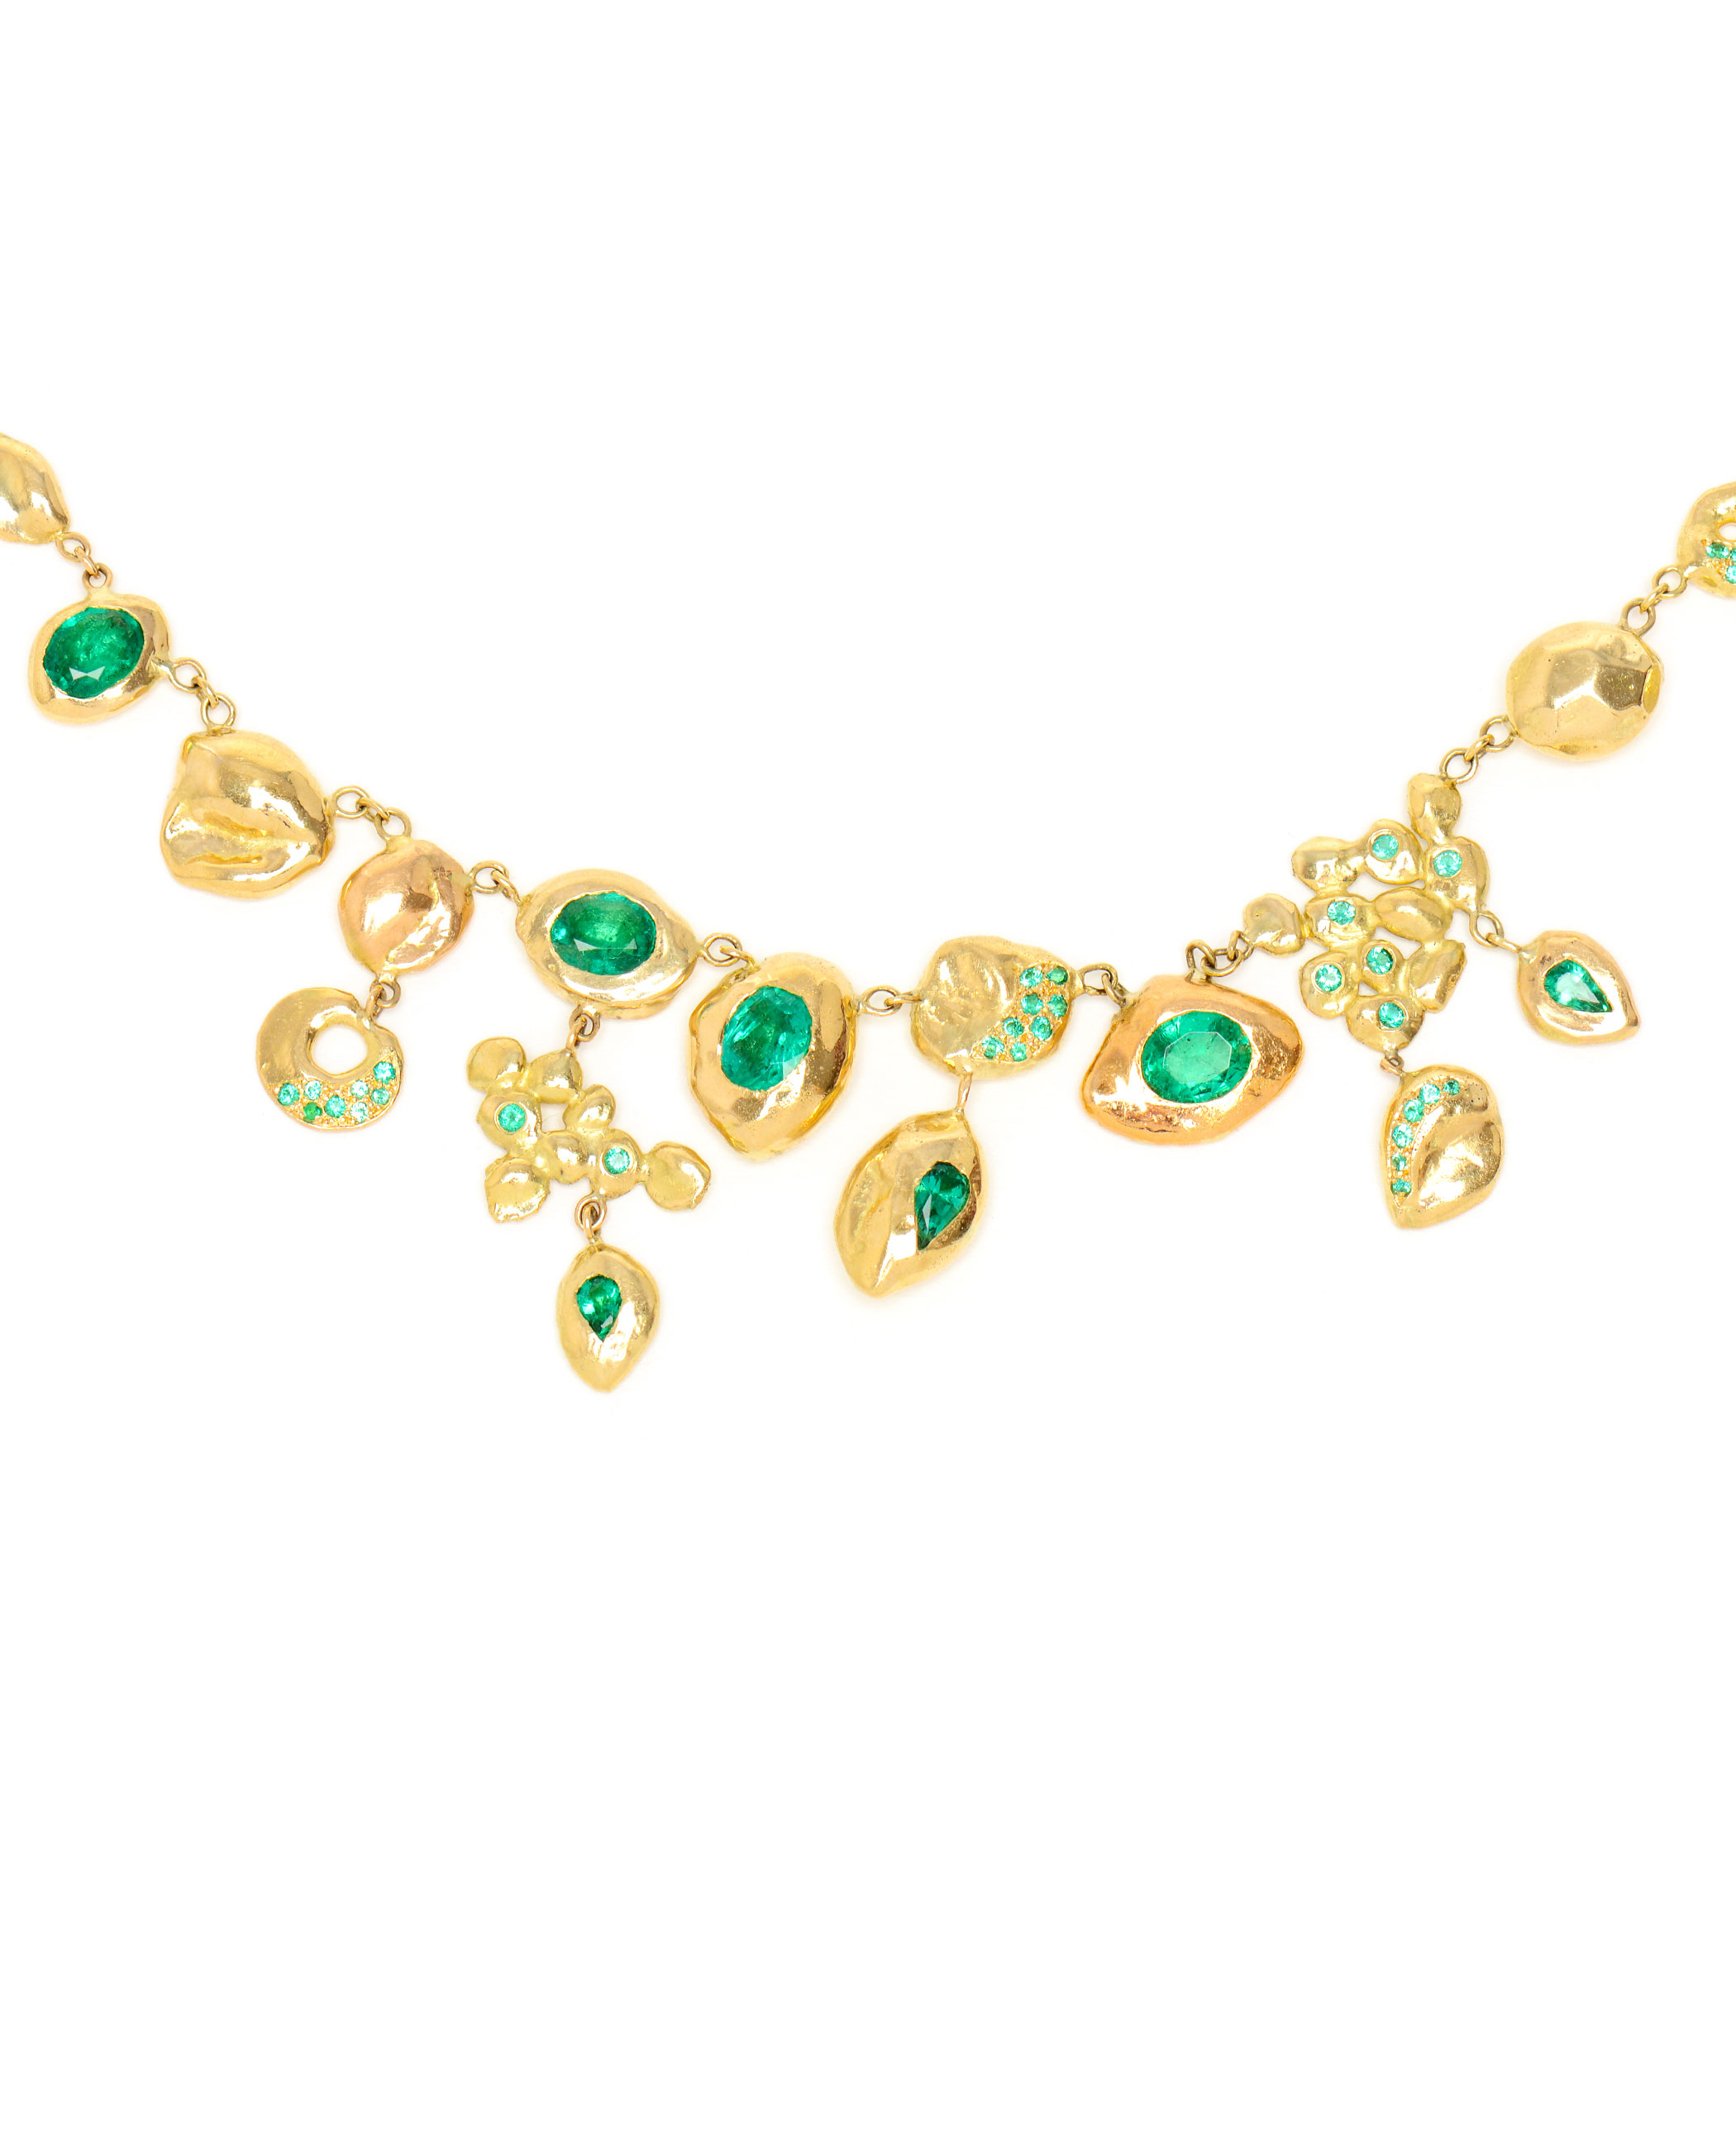 b diamond the i green emerald yellow gold by marco on frosted yard necklace